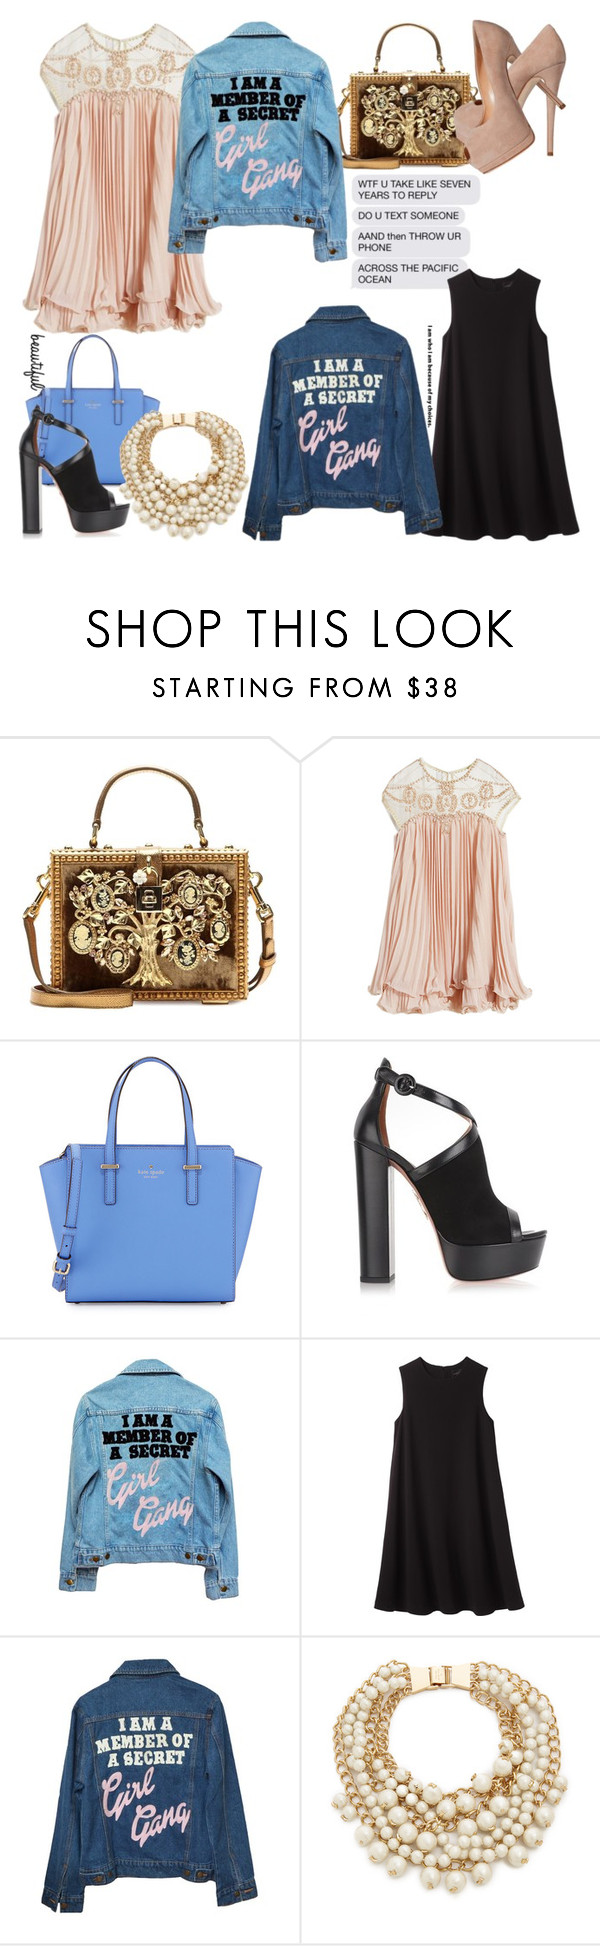 """""""I'll never leave you alone."""" by pinka50822 ❤ liked on Polyvore featuring Dolce&Gabbana, Giuseppe Zanotti, WithChic, Kate Spade, Aquazzura, High Heels Suicide, Rachel Comey, women's clothing, women and female"""